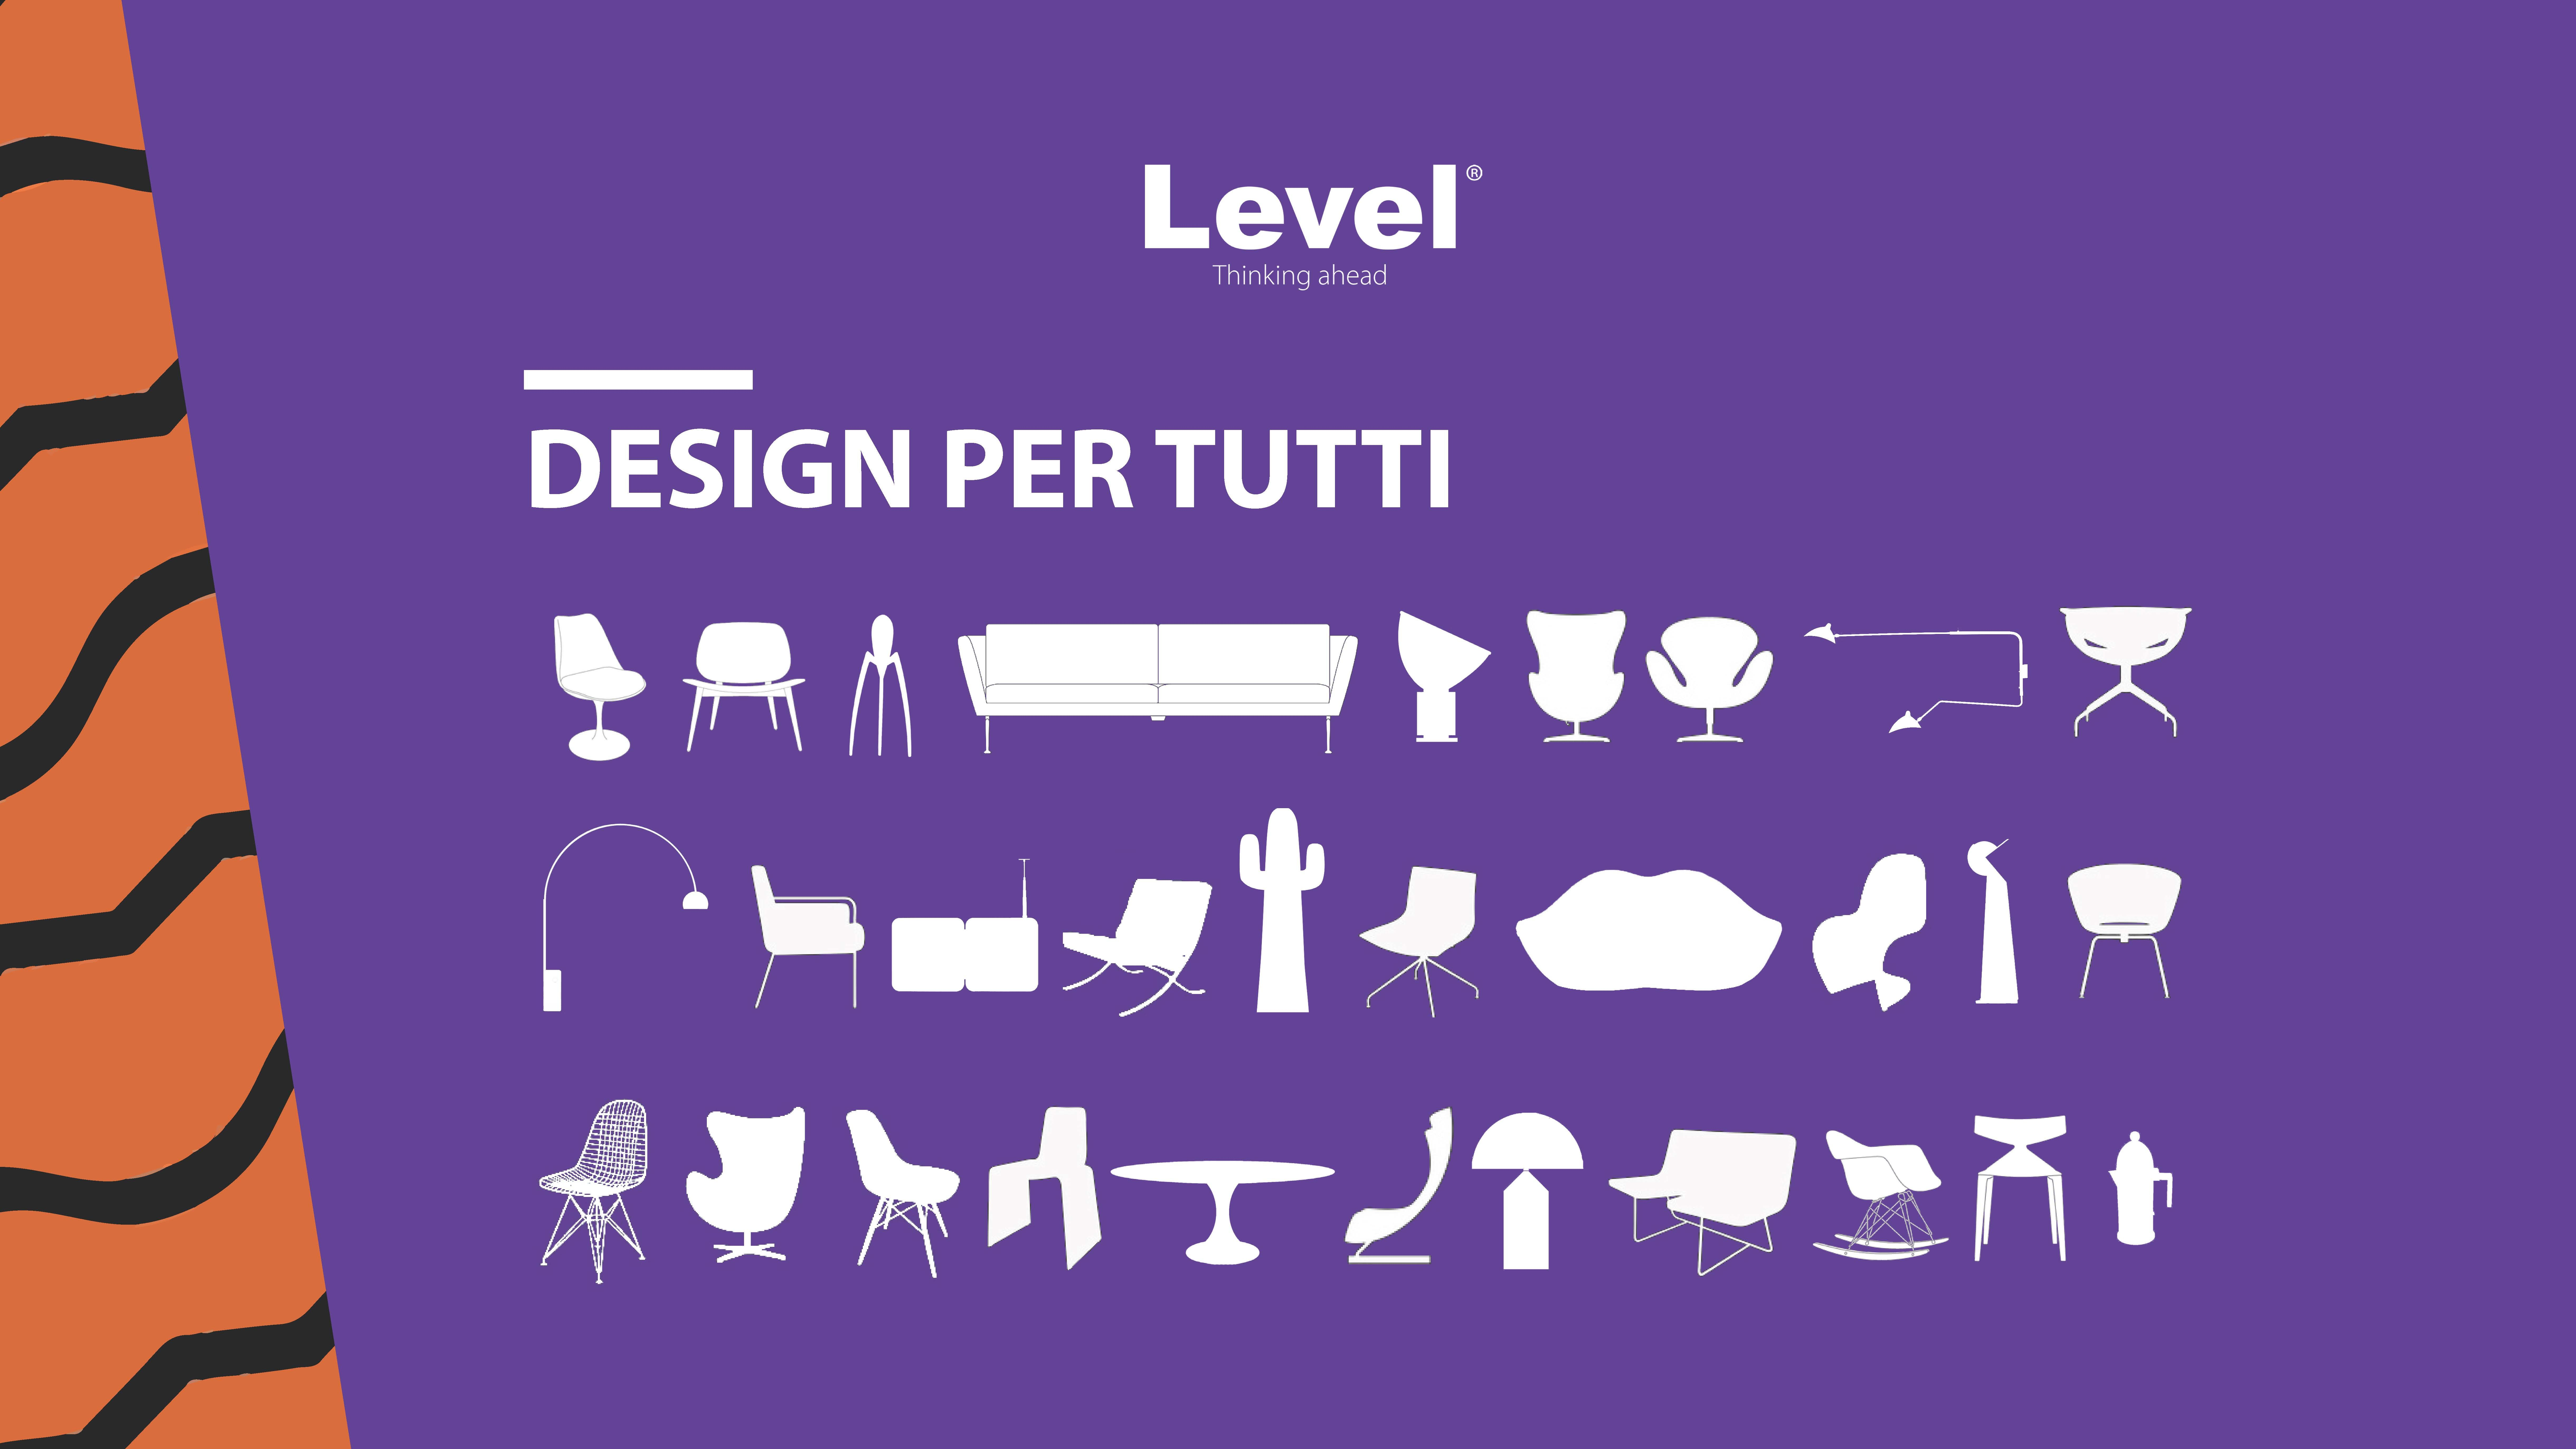 Design-per-tutti-LevelHUB-Level-Office-Landscape